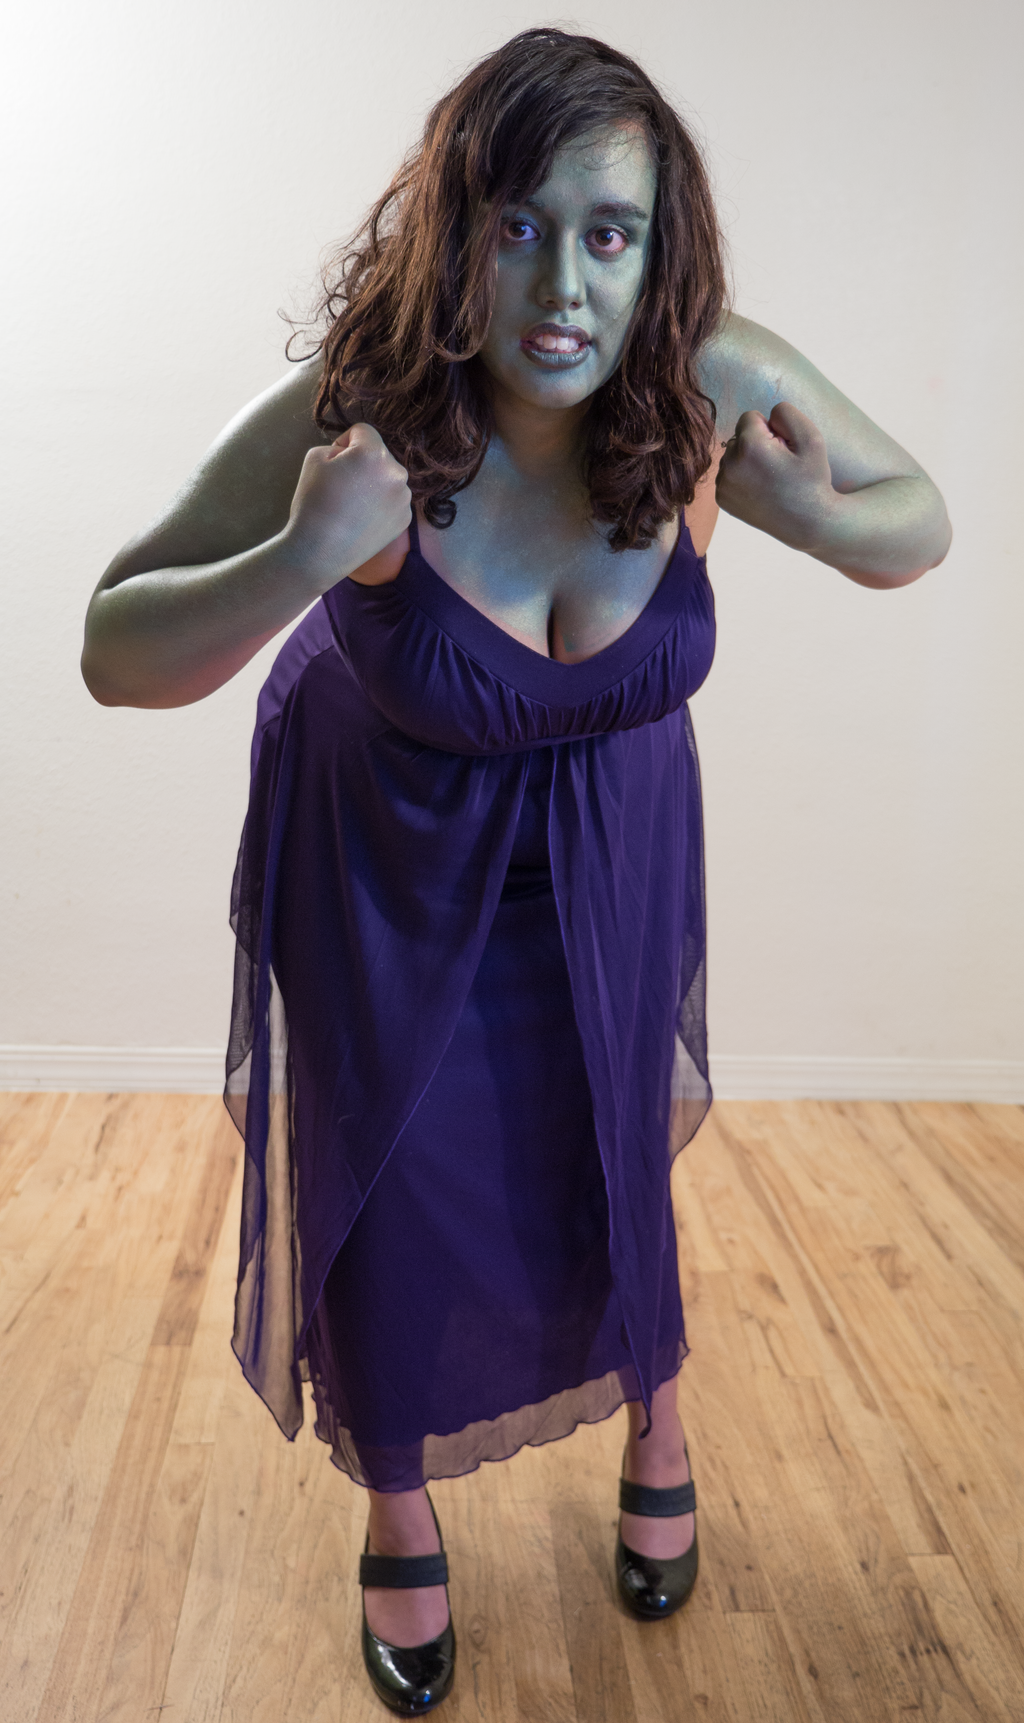 Formal Wear She-Hulk 9 by Angelic-Obscura